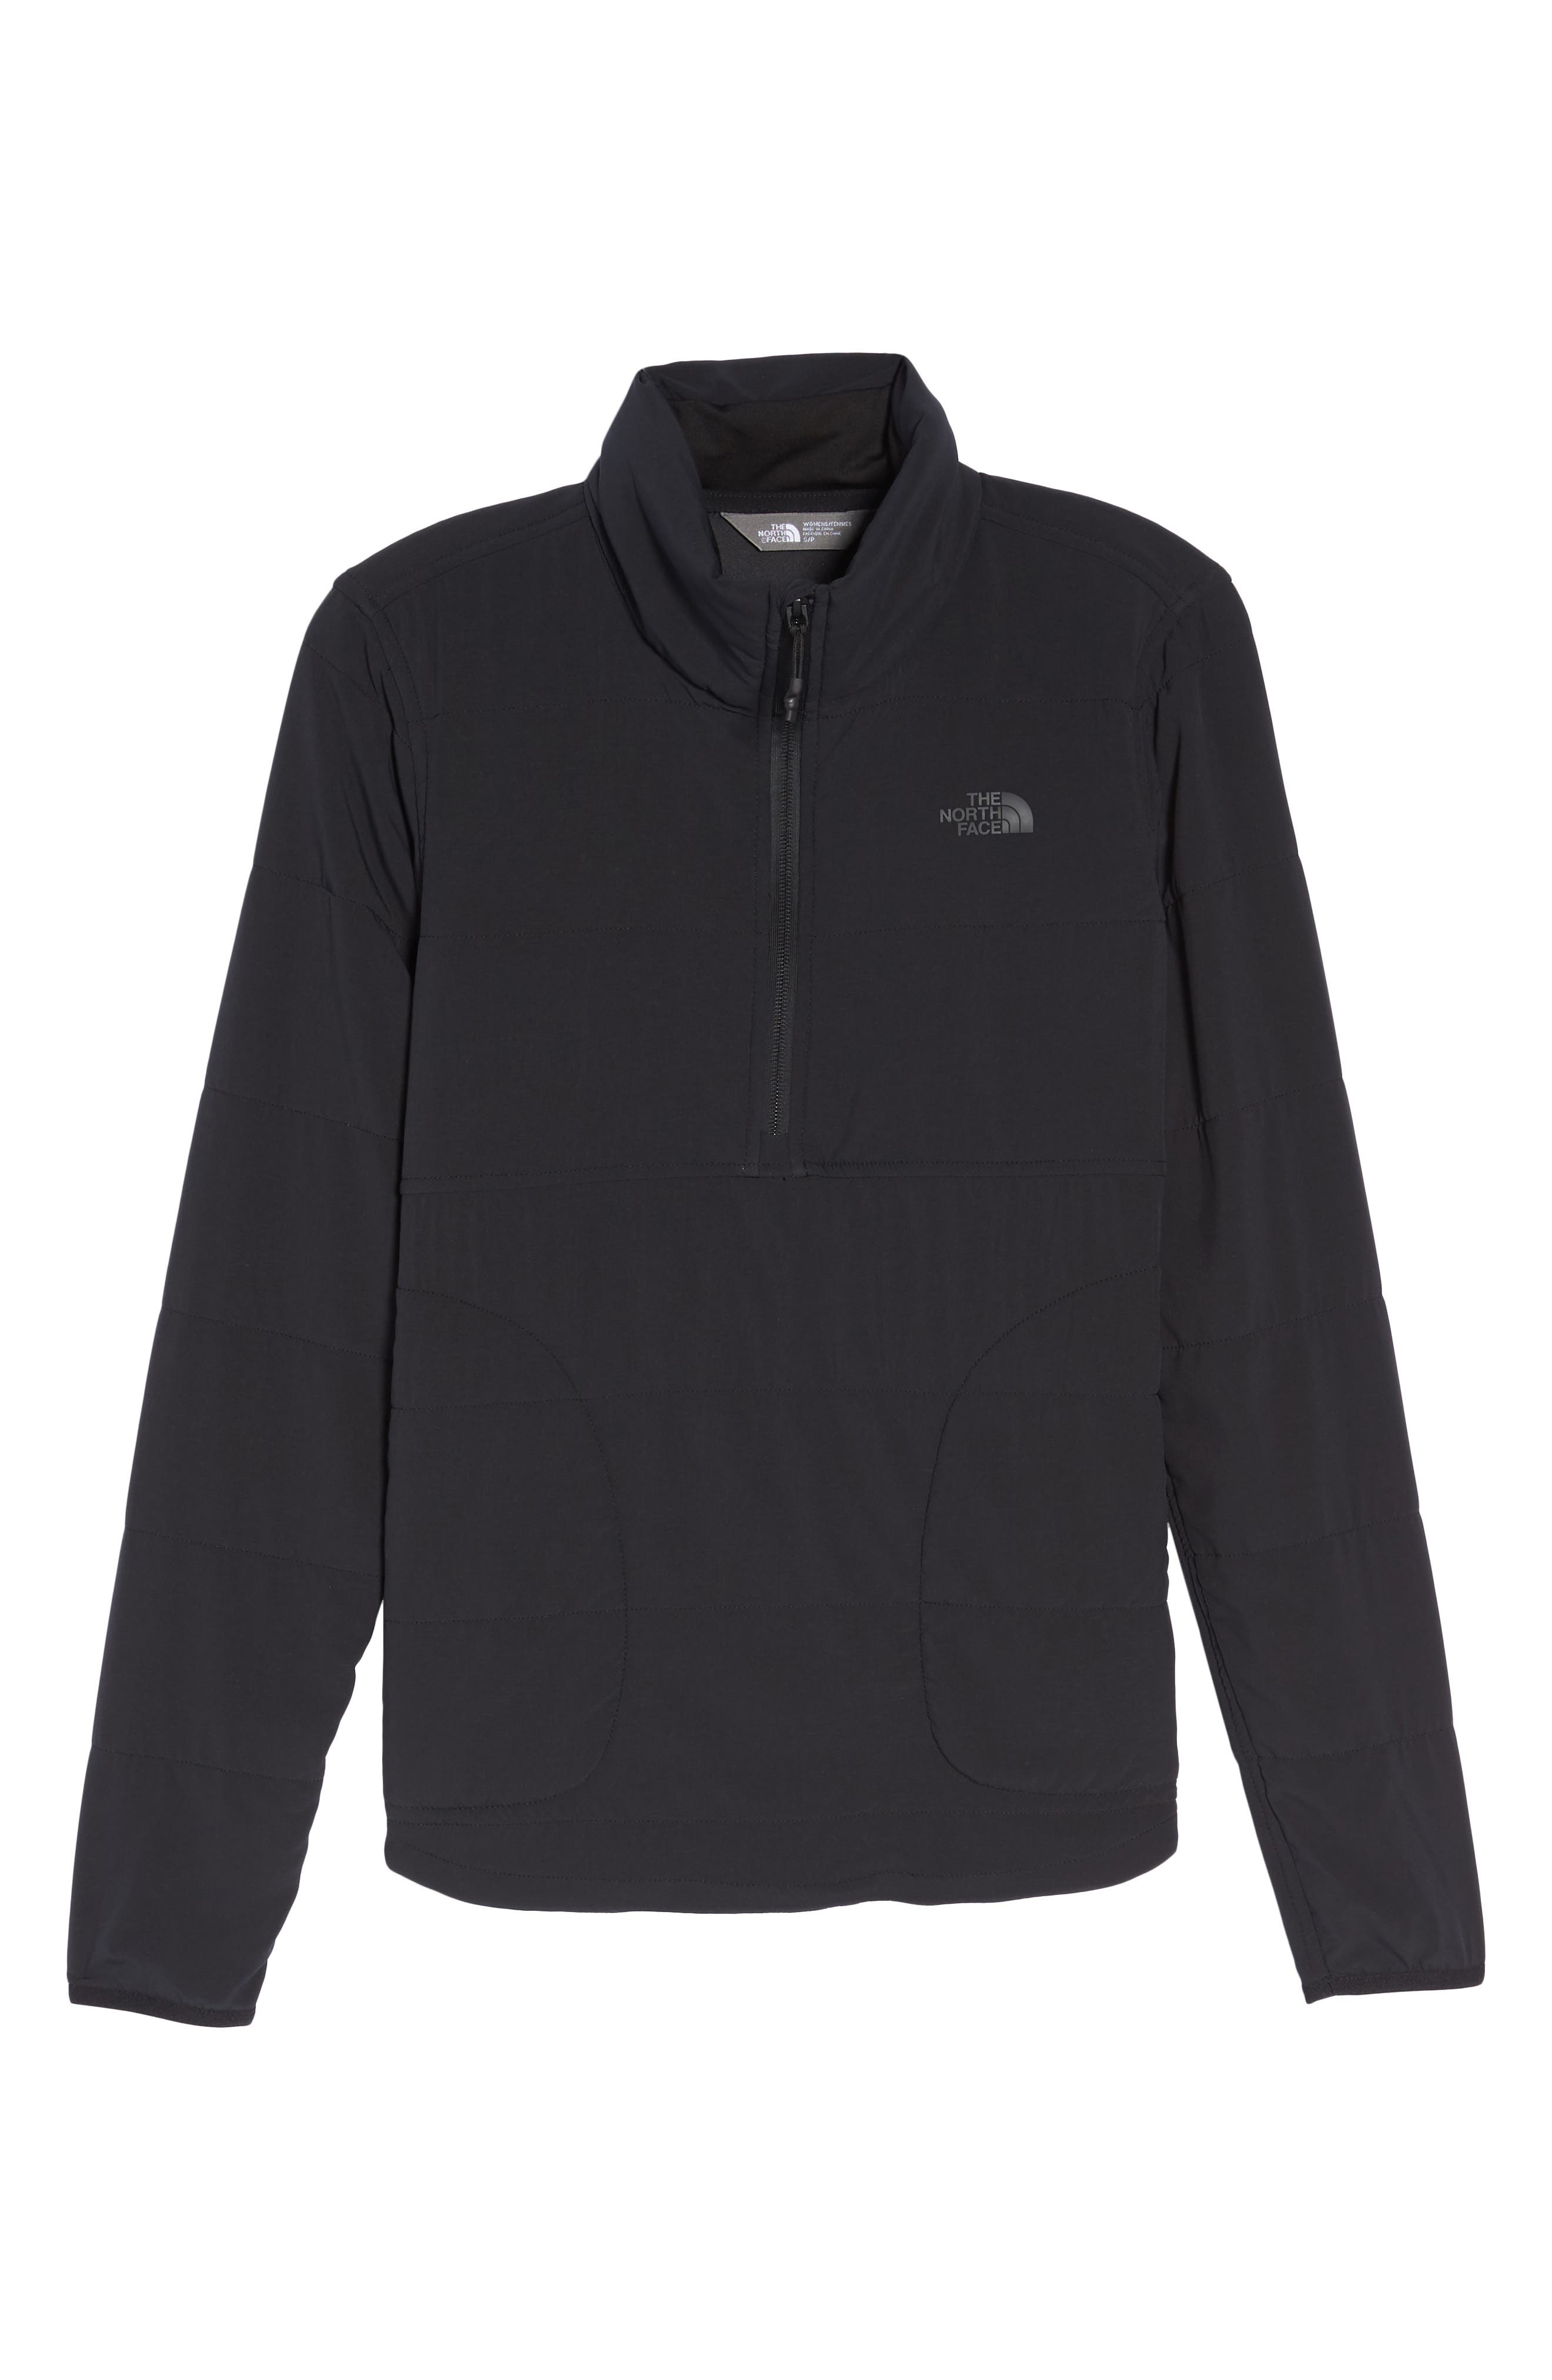 Mountain Sweatshirt Quarter Zip Pullover,                             Alternate thumbnail 14, color,